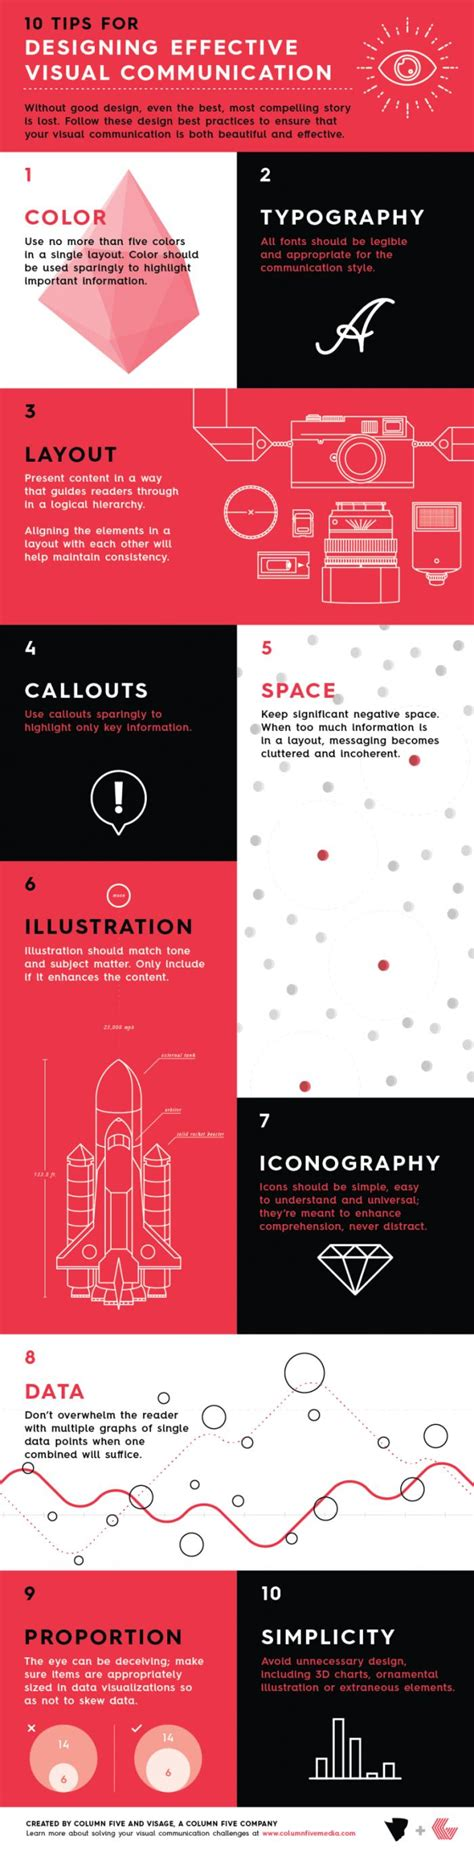 visual communication study design 2015 10 tips for designing effective visual communication